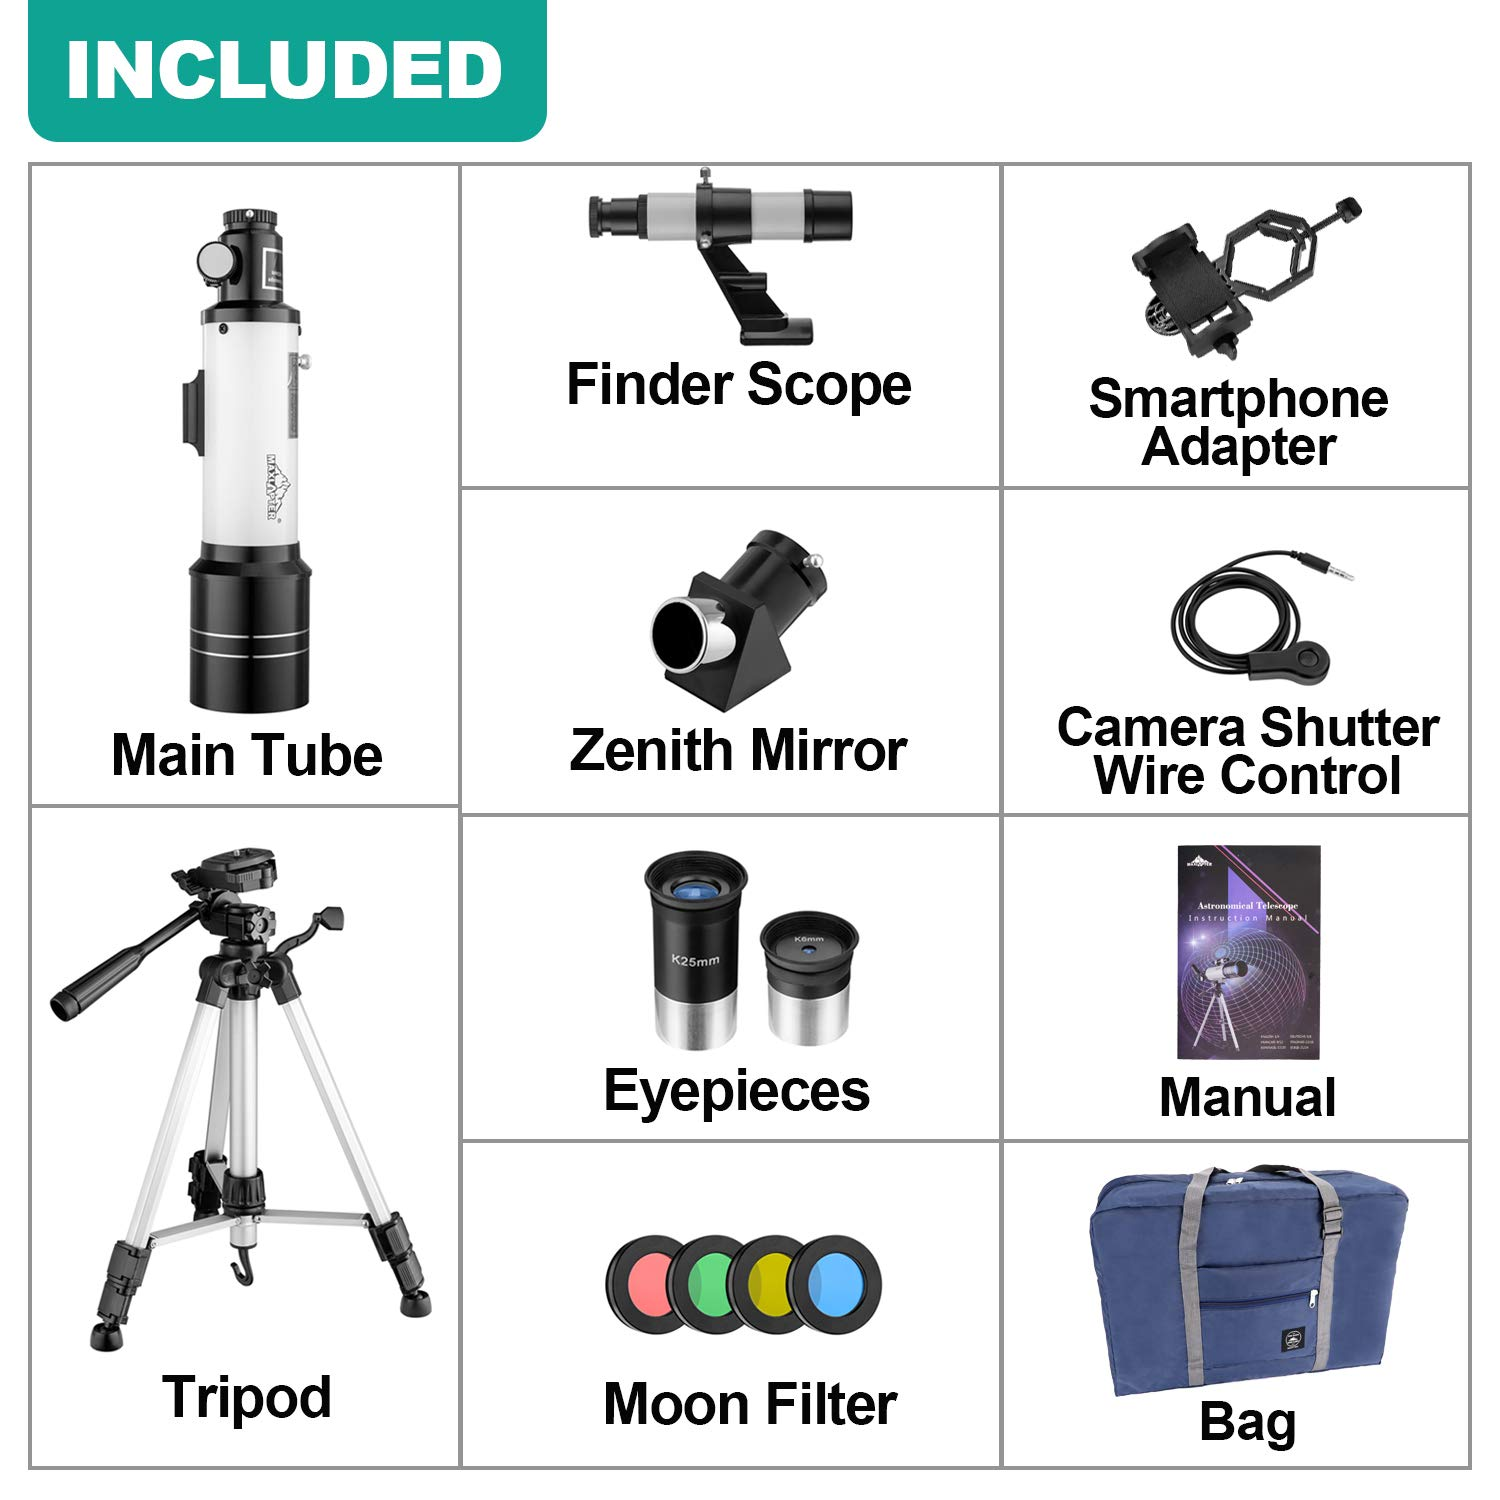 MAXLAPTER Telescope for Kids and Beginners, 70mm Travel Refractor Telescope for Astronomy with Adjustable Tripod, Smartphone Adapter, Camera Shutter Wire Control, Backpack by MAXLAPTER (Image #6)